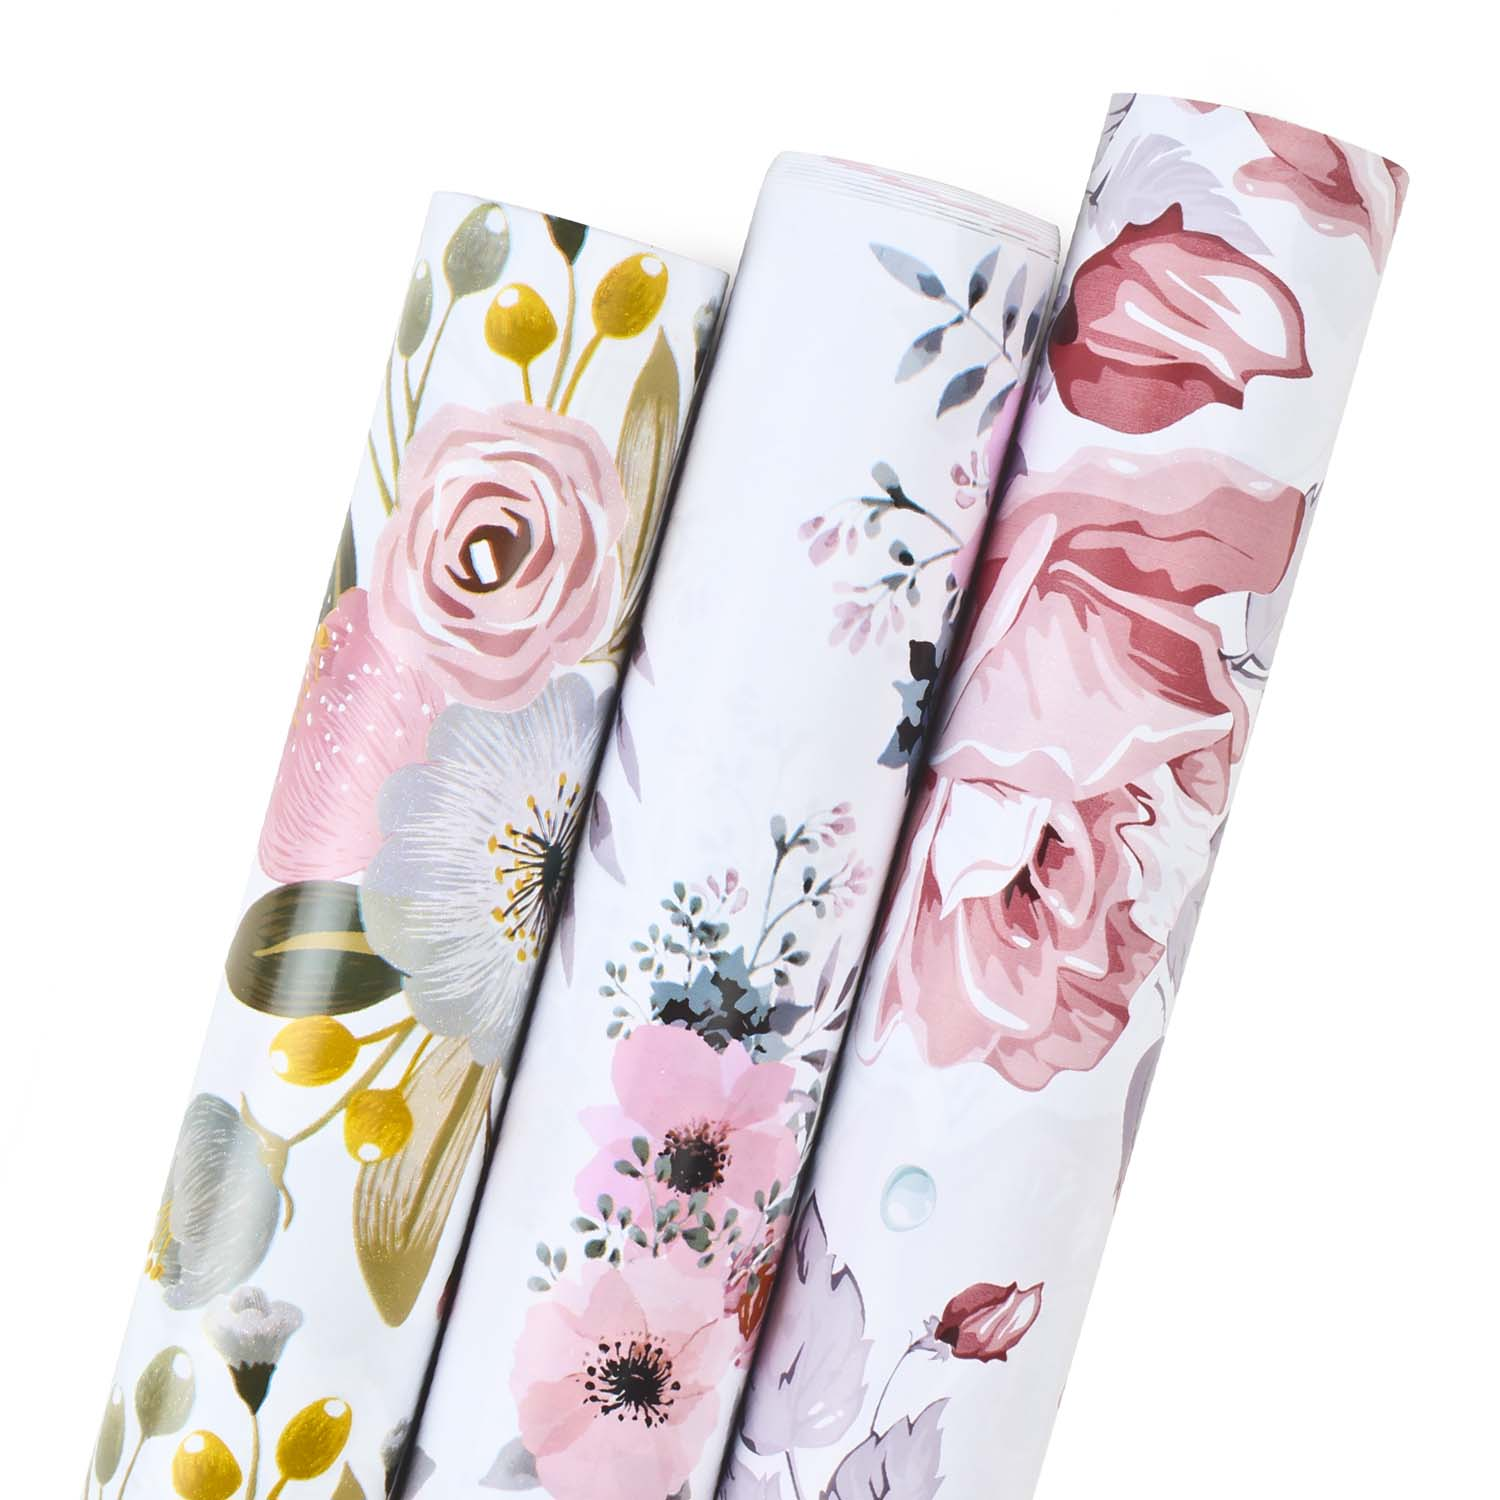 "LaRibbons Modern Floral Wrapping Paper White/Pink Multi 30"" x 120"" 3 Roll Pack"